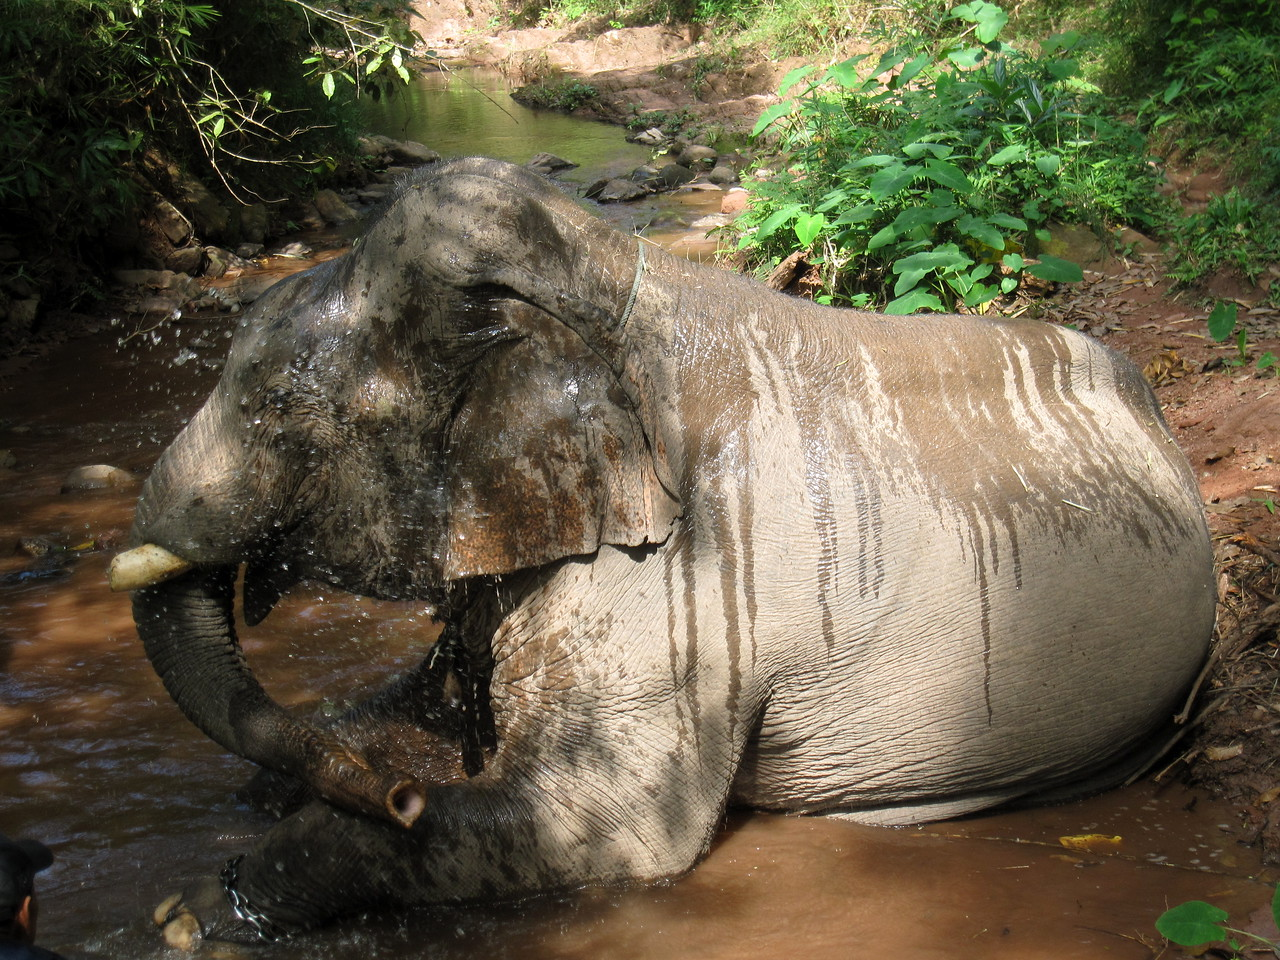 The bull elephant bathing in the river